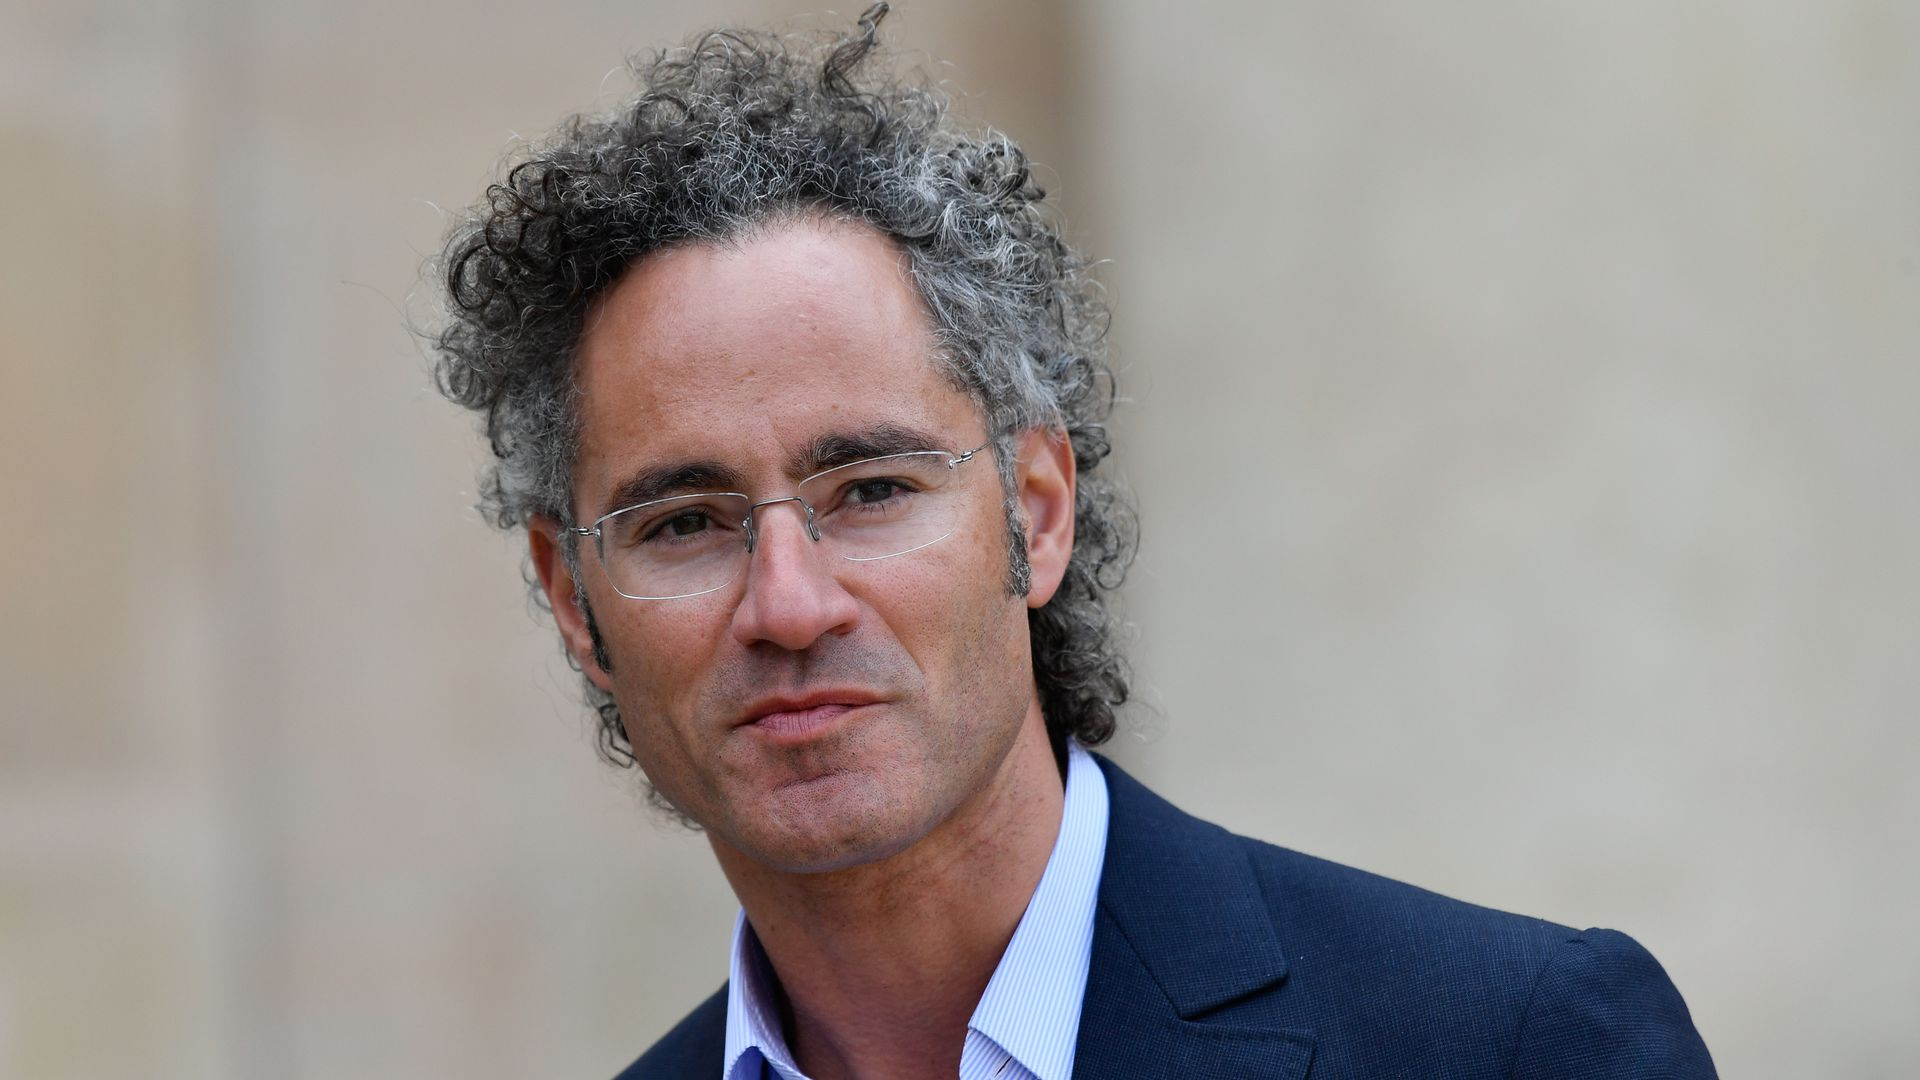 """""""It's a legitimate, complex issue"""": Palantir CEO defends company's border work with ICE"""